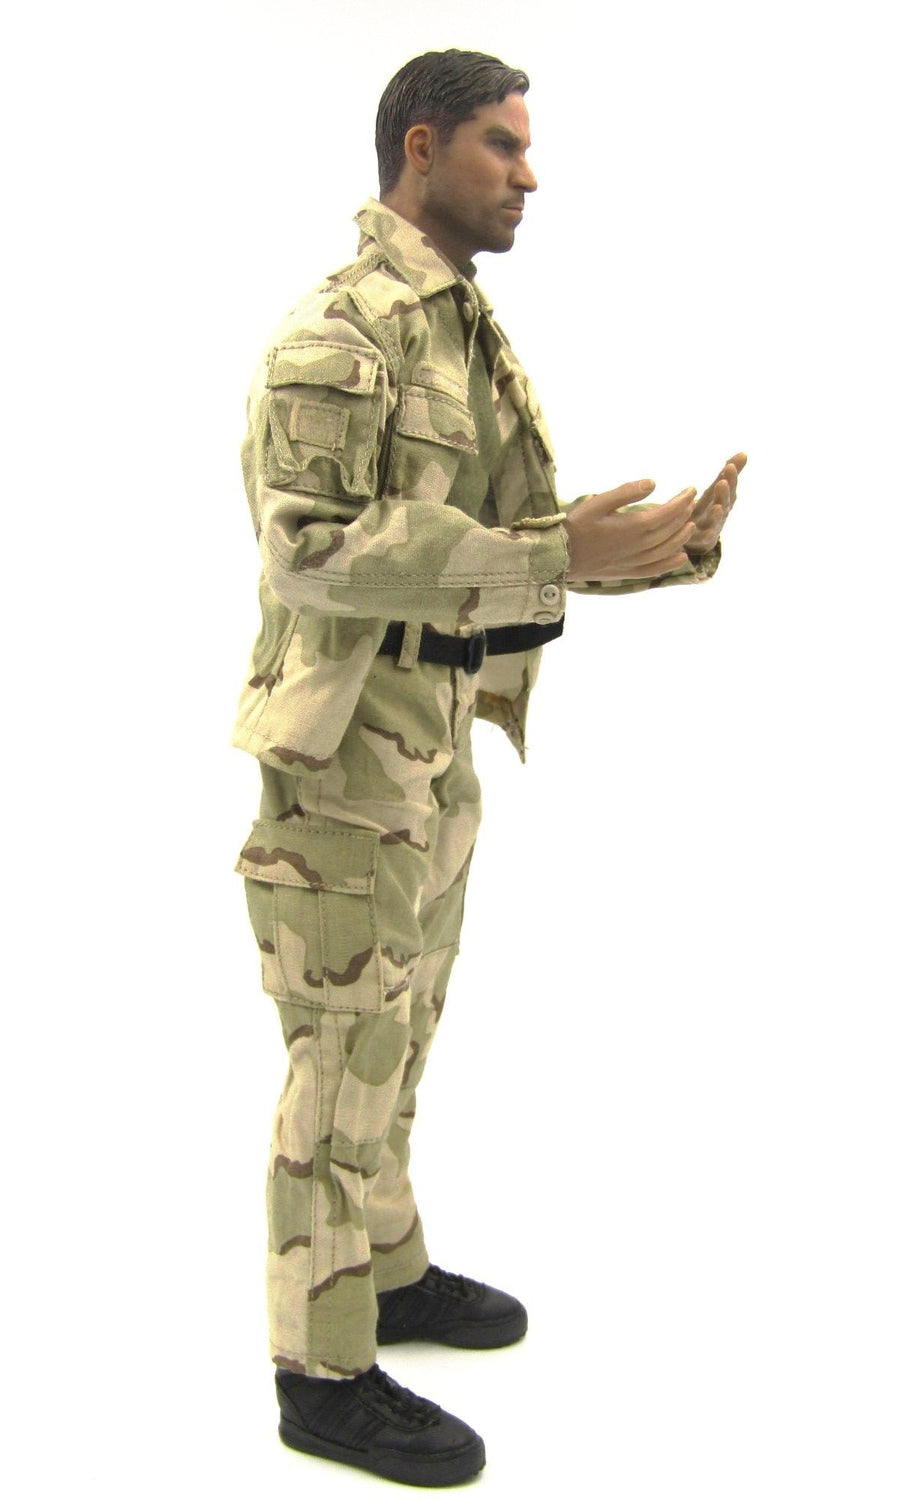 BHD - Support Rifleman - Male Base Body w/Desert Camo Uniform Set